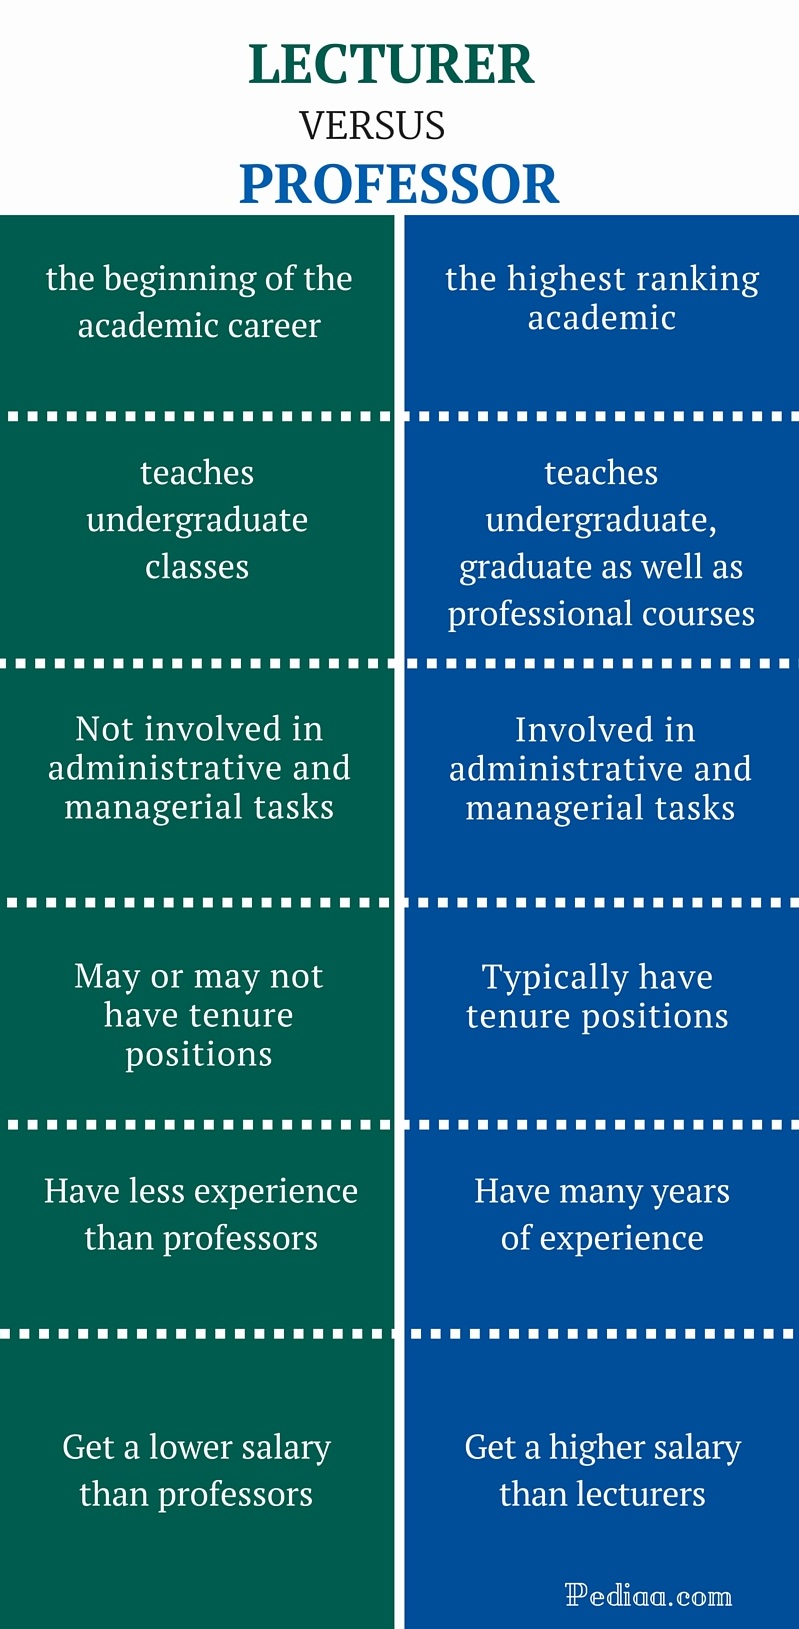 Difference Between Lecturer and Professor - infographic